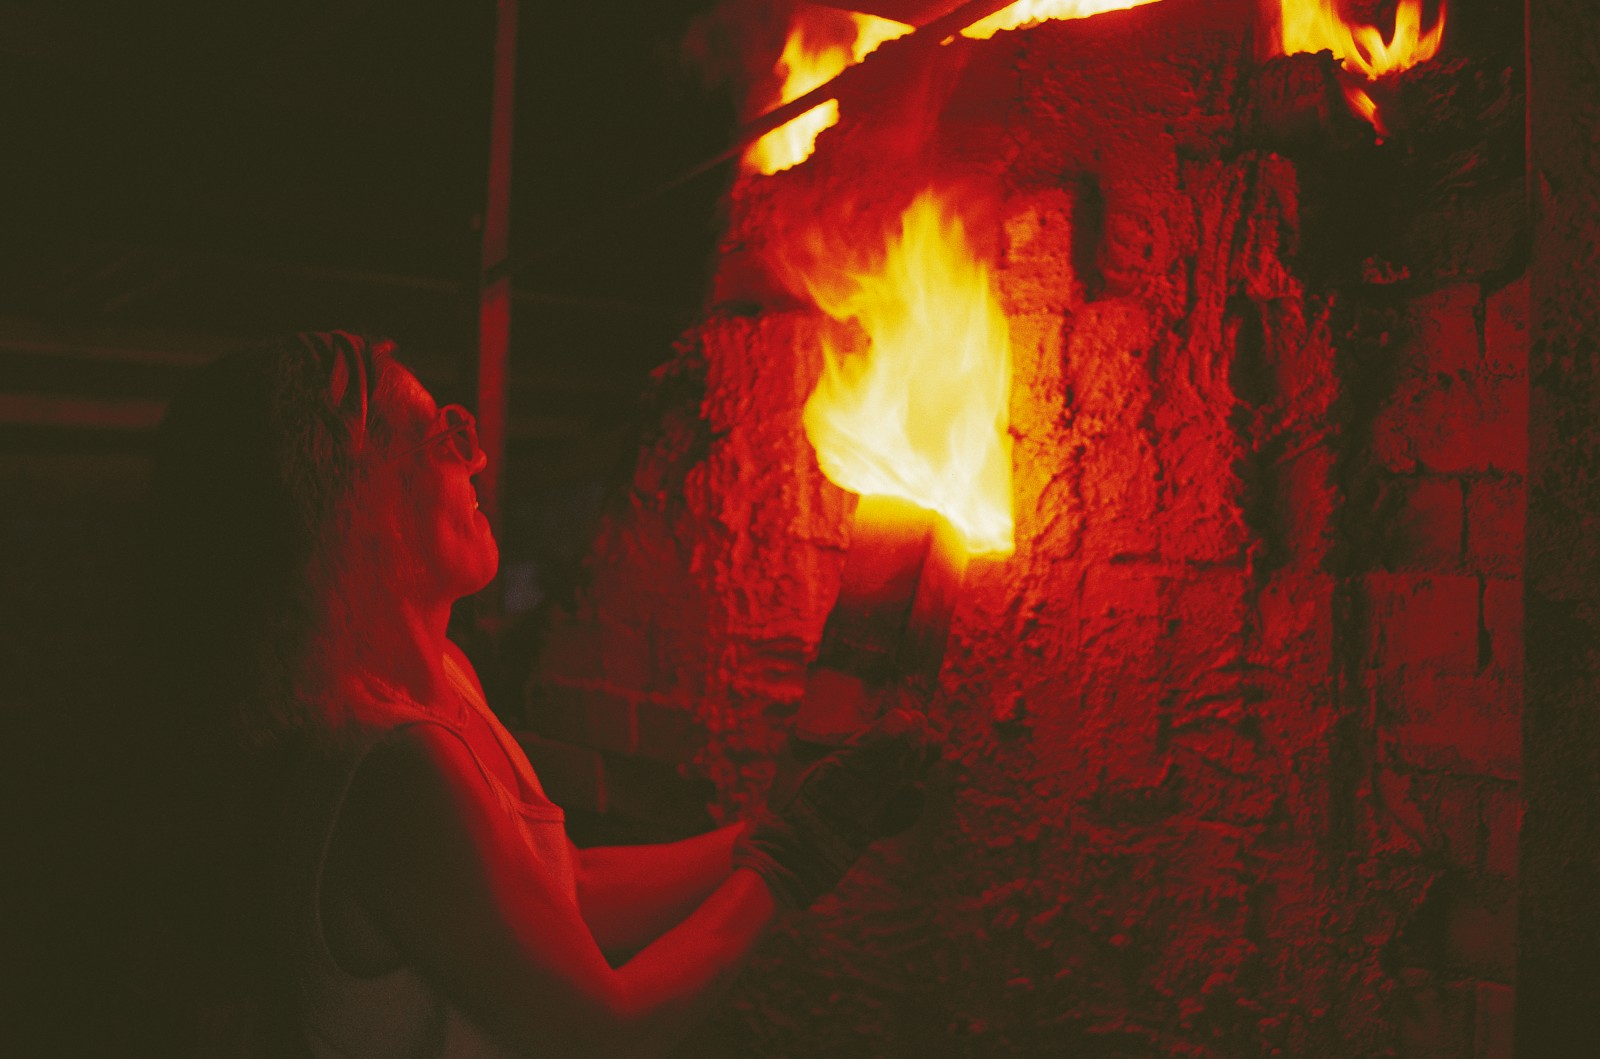 """It's like harnessing a dragon,"" says Coromandel potter Petra Meyboden, opening an observation port to check progress inside a wood-fired kiln. At its peak, the temperature will reach close to 1300°C—hotter than molten lava. Salt crystals thrown into the inferno at this point will vaporise and be carried through the kiln by the flames, creating a distinctive ""orange"" glaze on the pots and on the interior surfaces of the kiln."